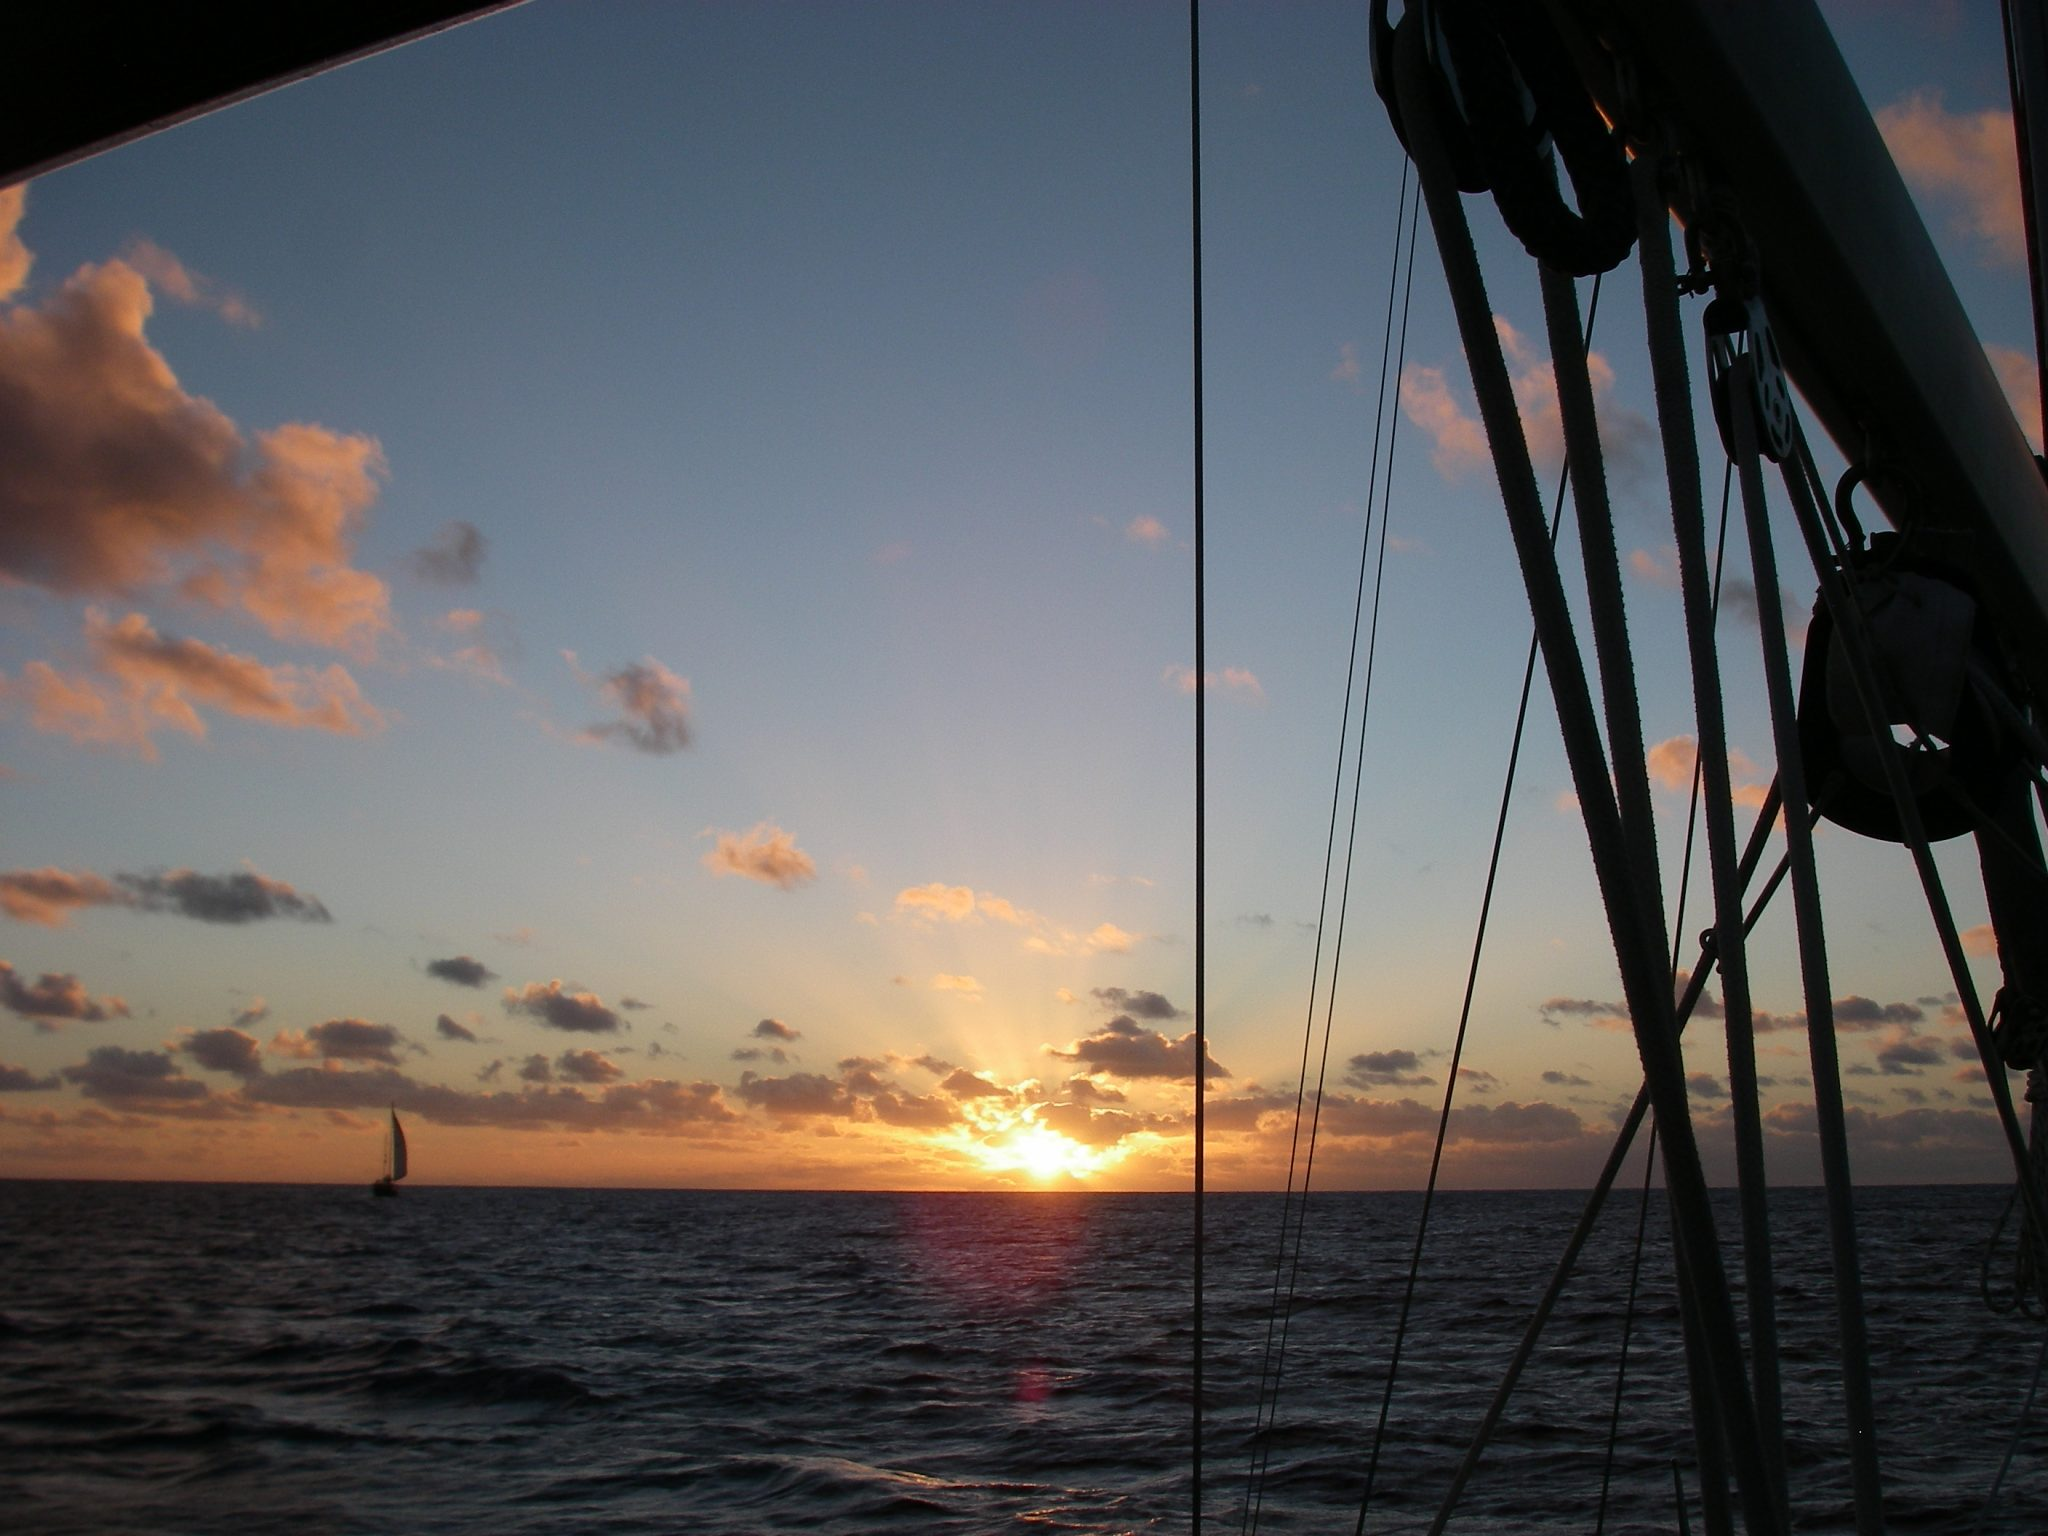 4. As we sailed away from Tonga, bound for Vanuatu, a gorgeous sunset welcomed us to sea! Another sailboat was heading for sea, as well as Joyful